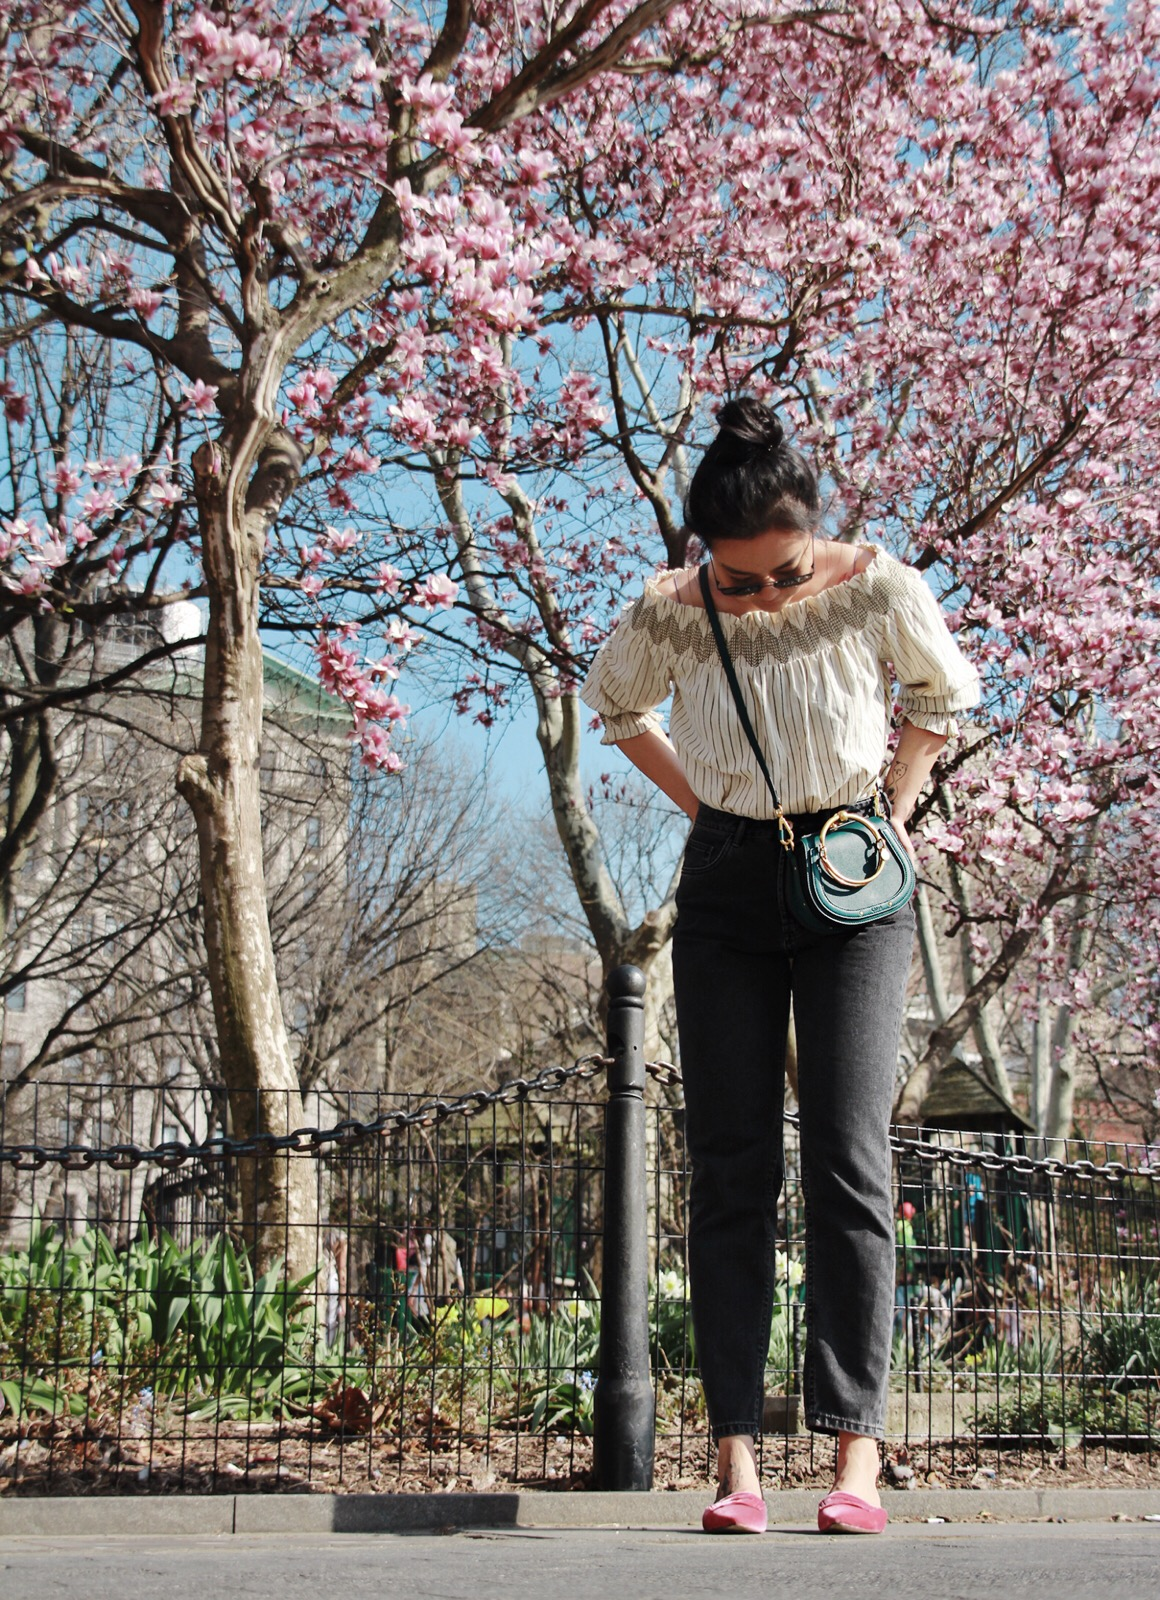 10 Little Things To Do In Spring - I've lived in New York for four years now, I can't say I love New York all the time. The city is like an annoying ex that full of disappointment and never keeps its promises. But every spring...